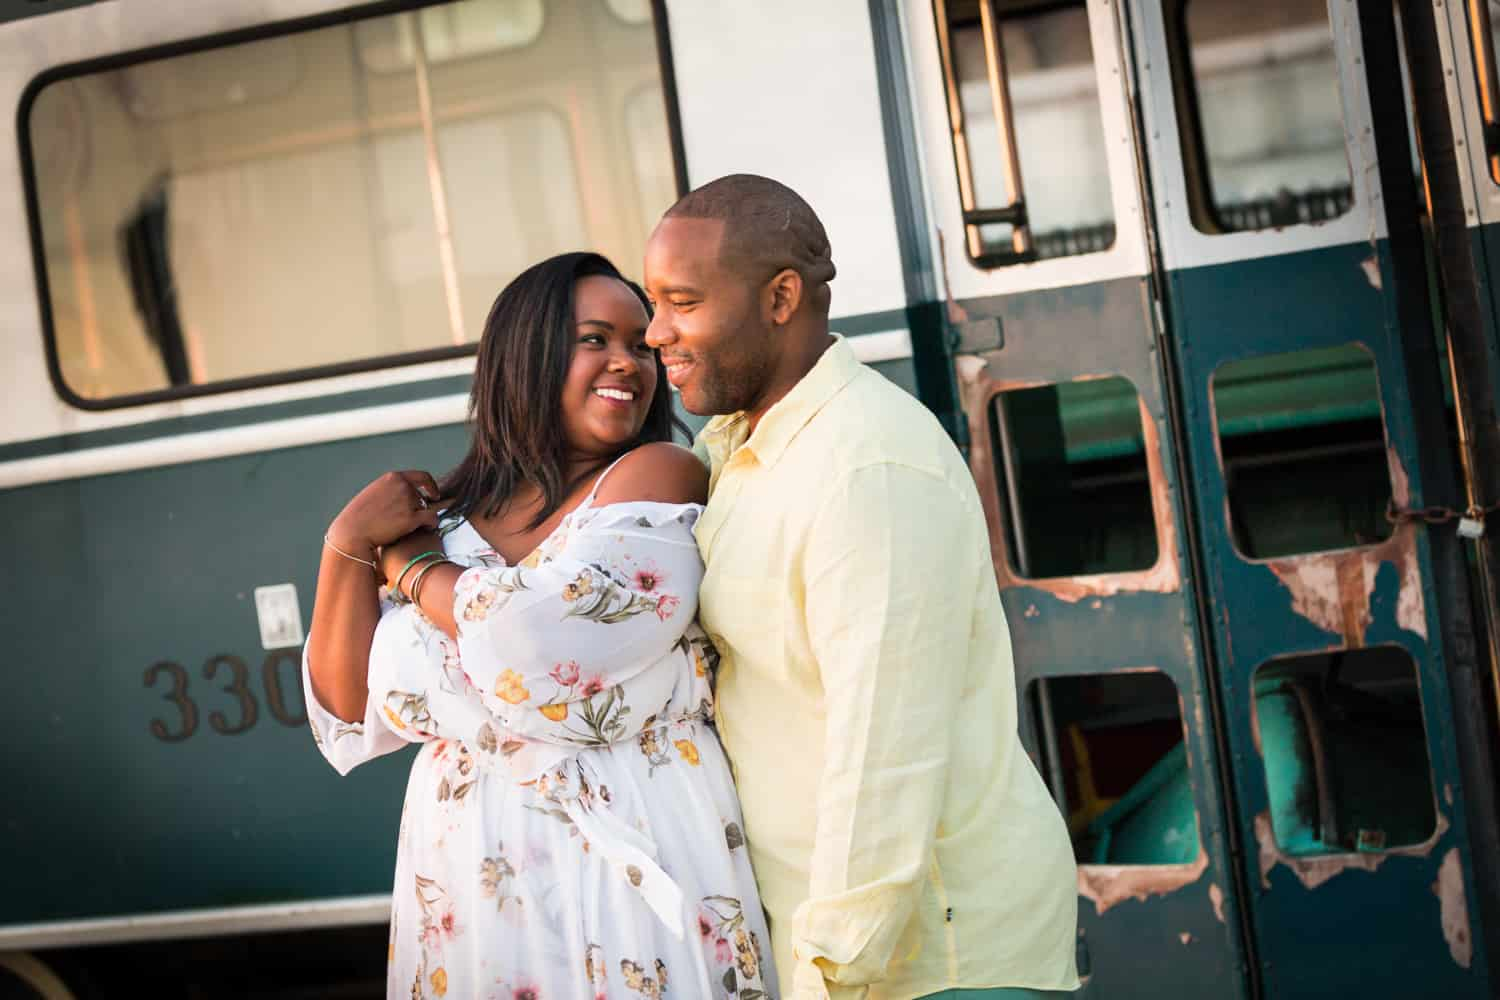 Couple in front of bus for an article on creative engagement photo shoot ideas